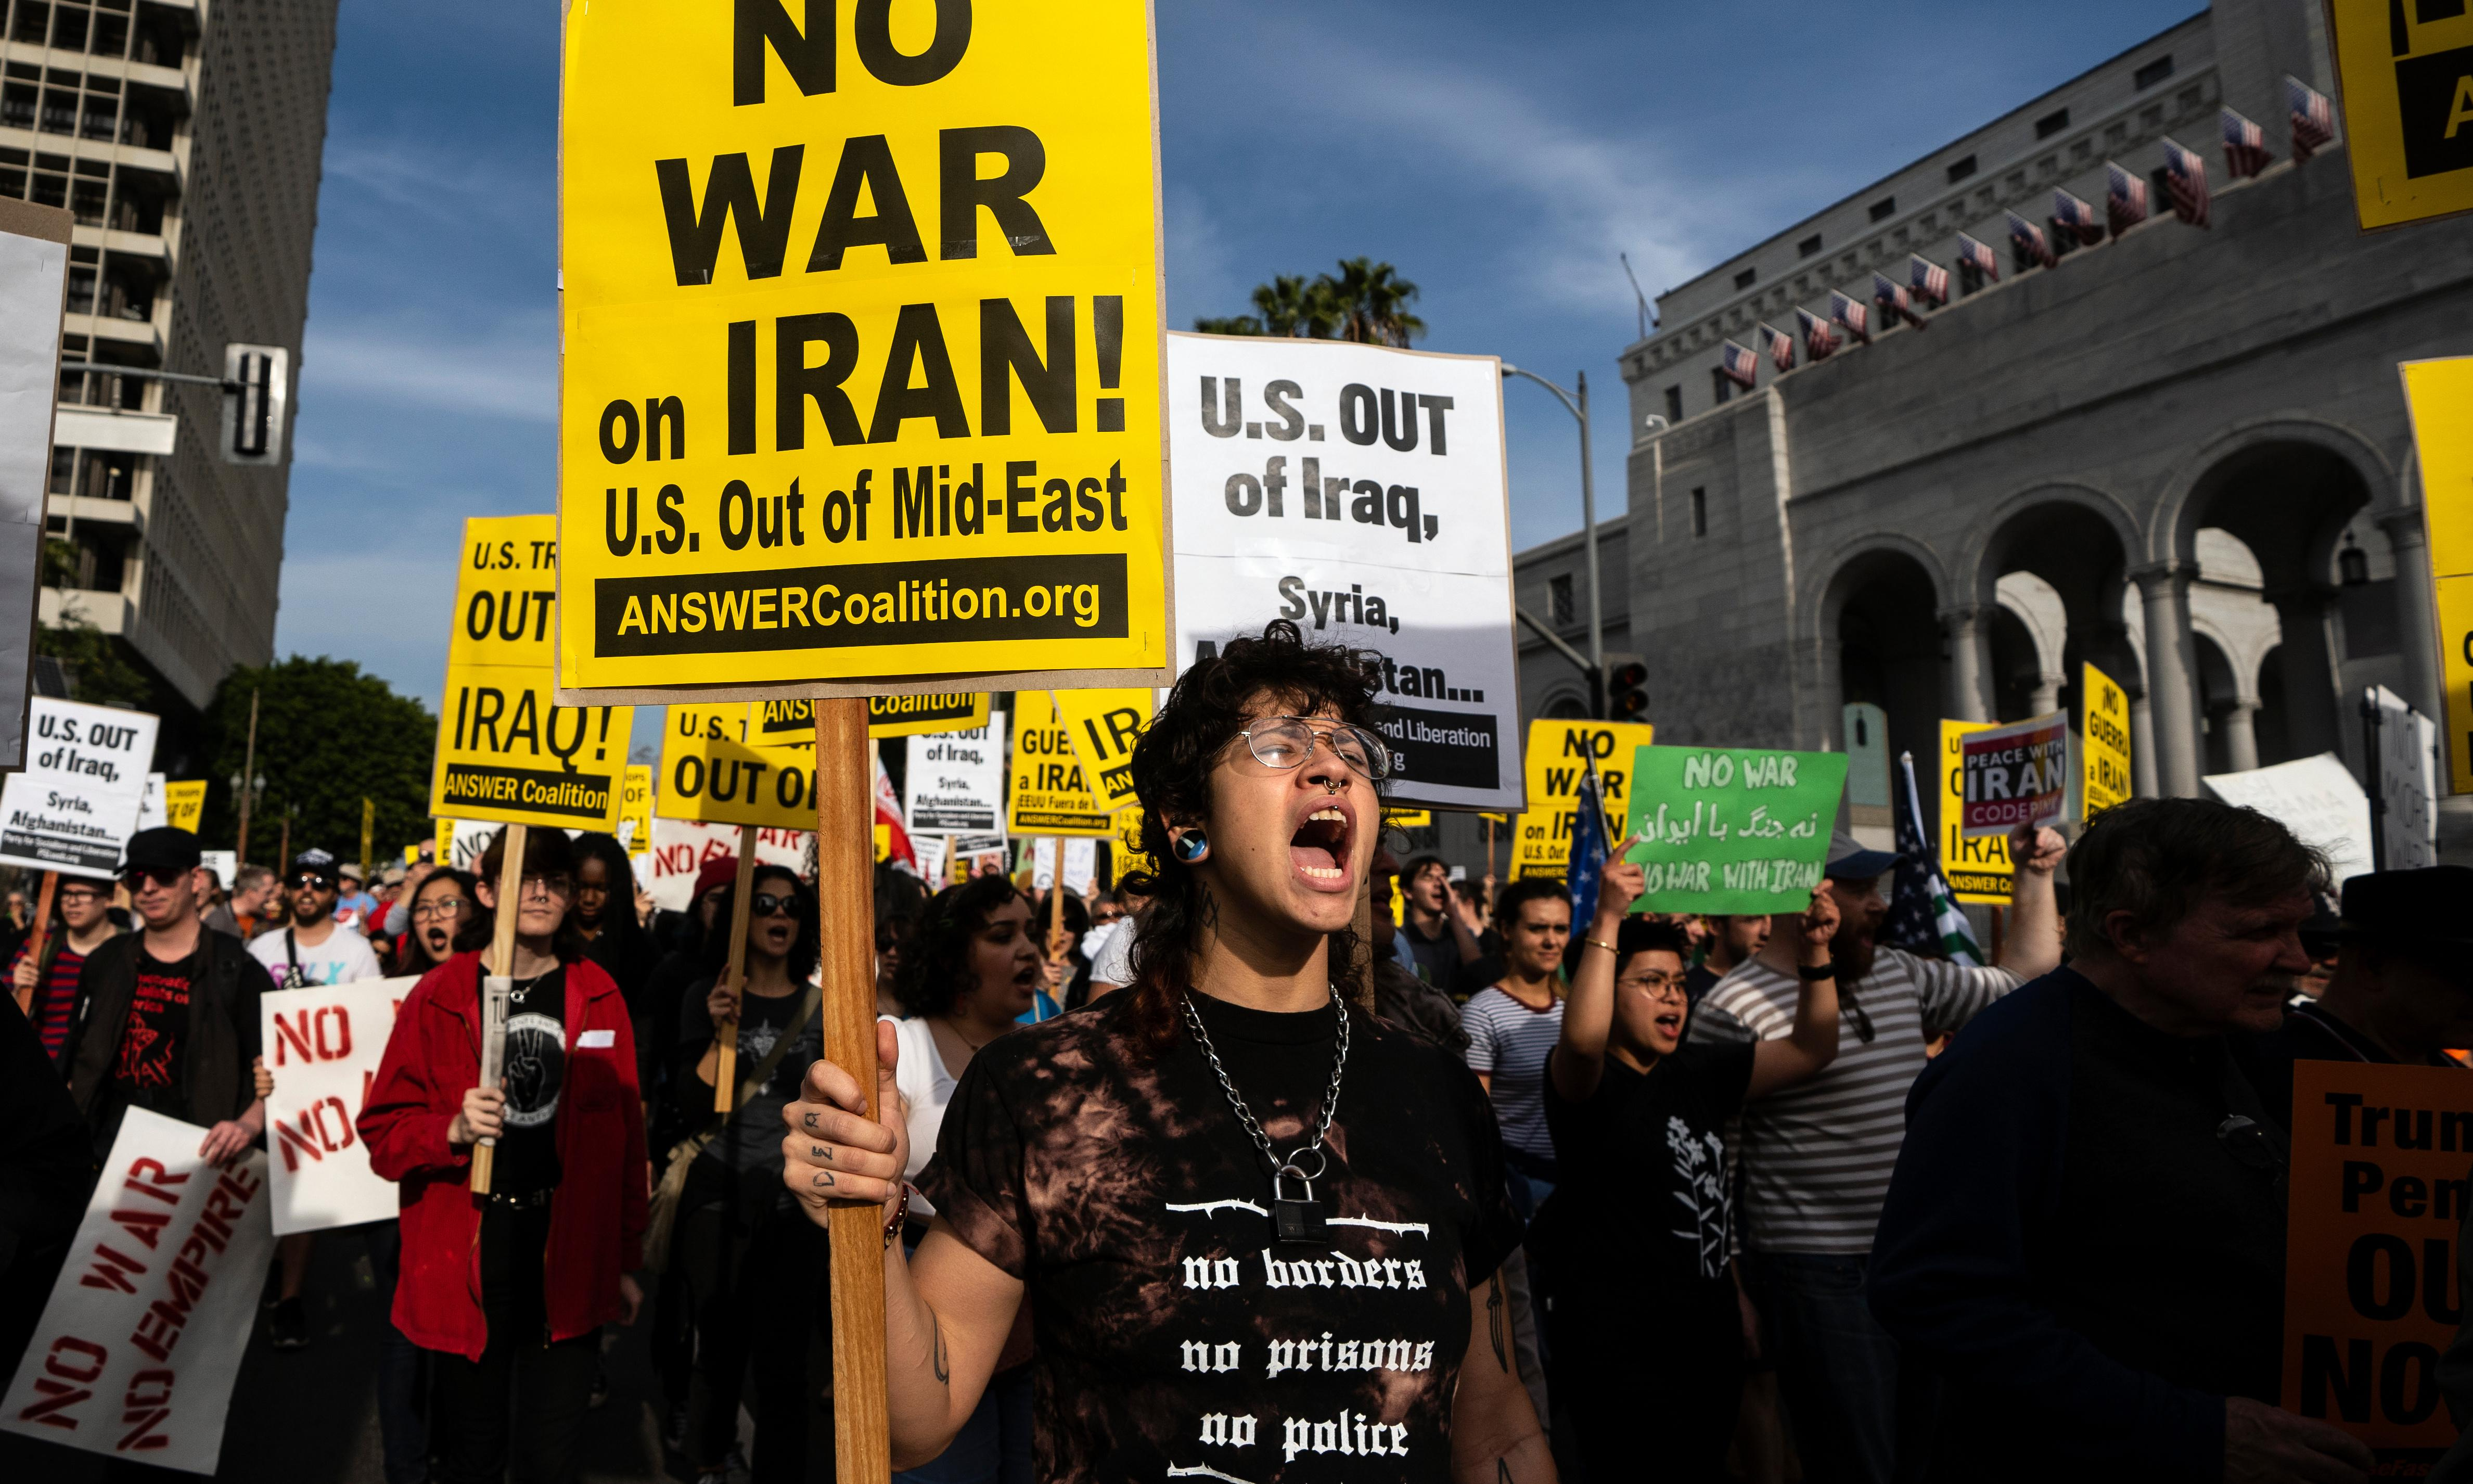 Iran missile strike: 50 US troops now diagnosed with brain injuries